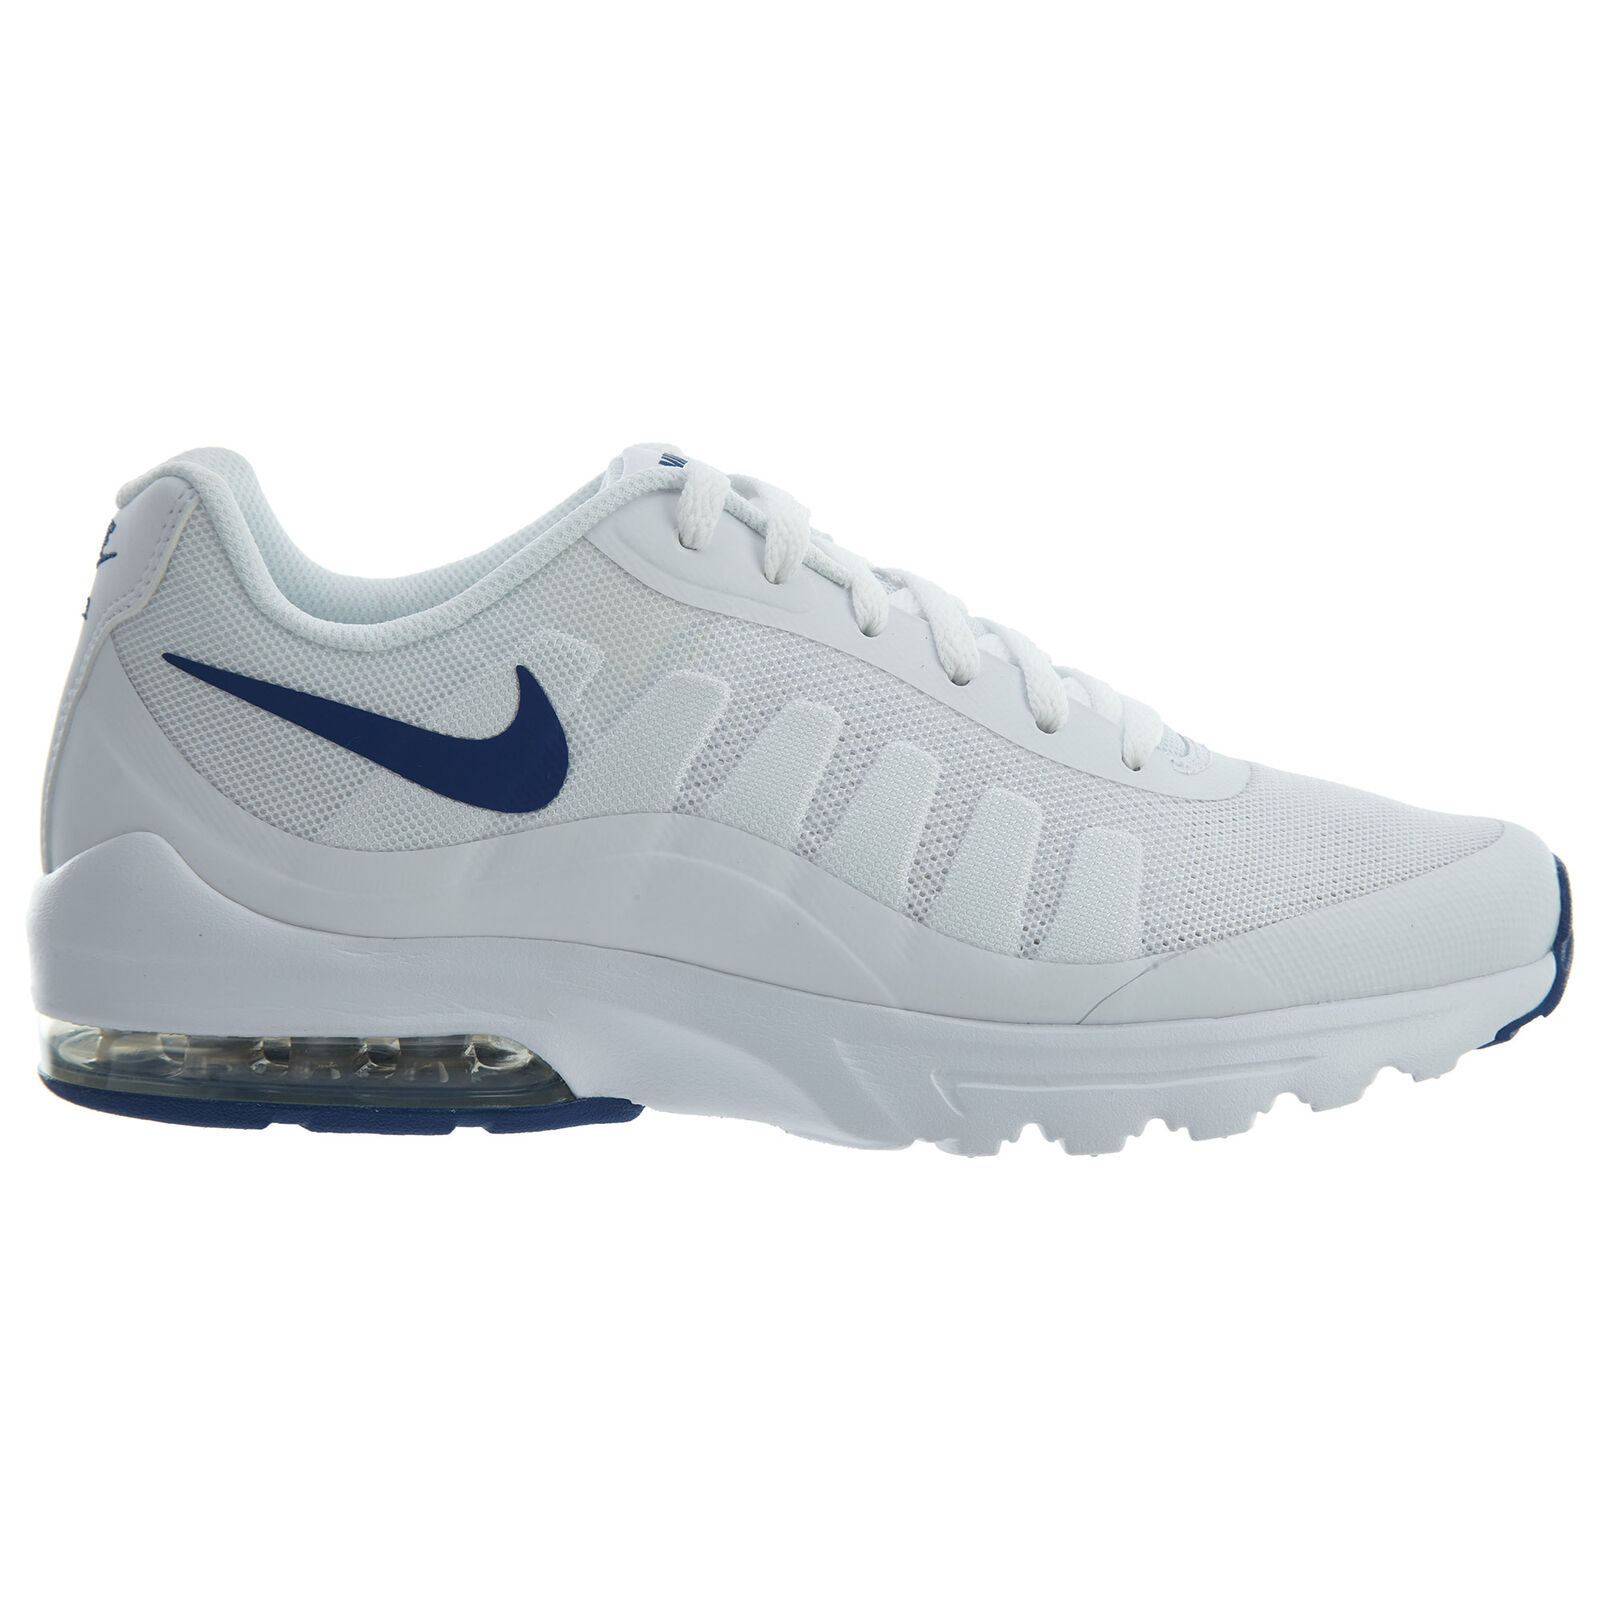 Nike Air Max Invigor Mens 749680-101 White Gym blueee Mesh Running shoes Size 6.5